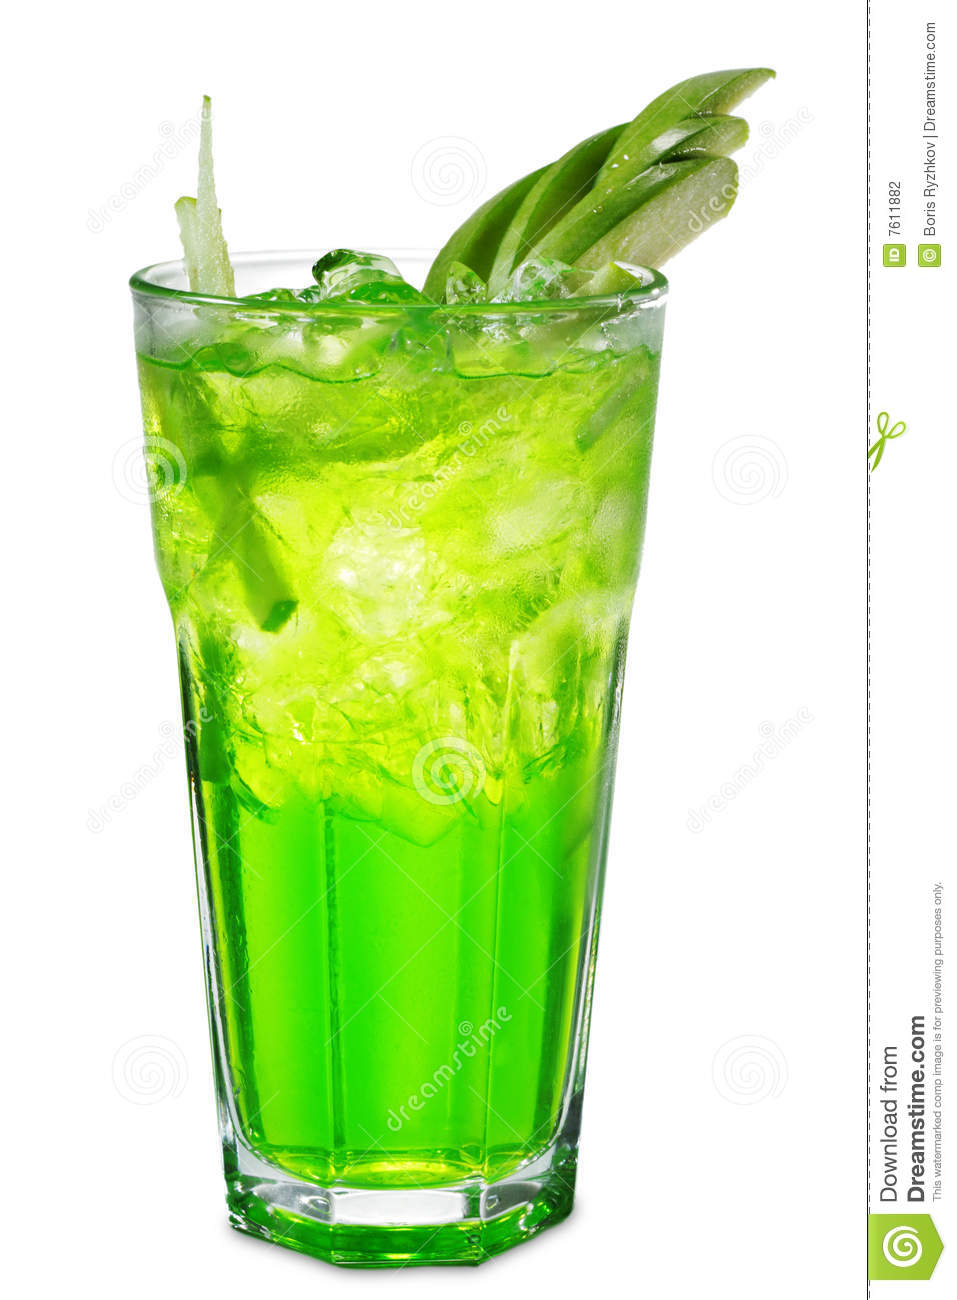 Green alcoholic cocktail stock photography image 7611882 for Green cocktails with vodka